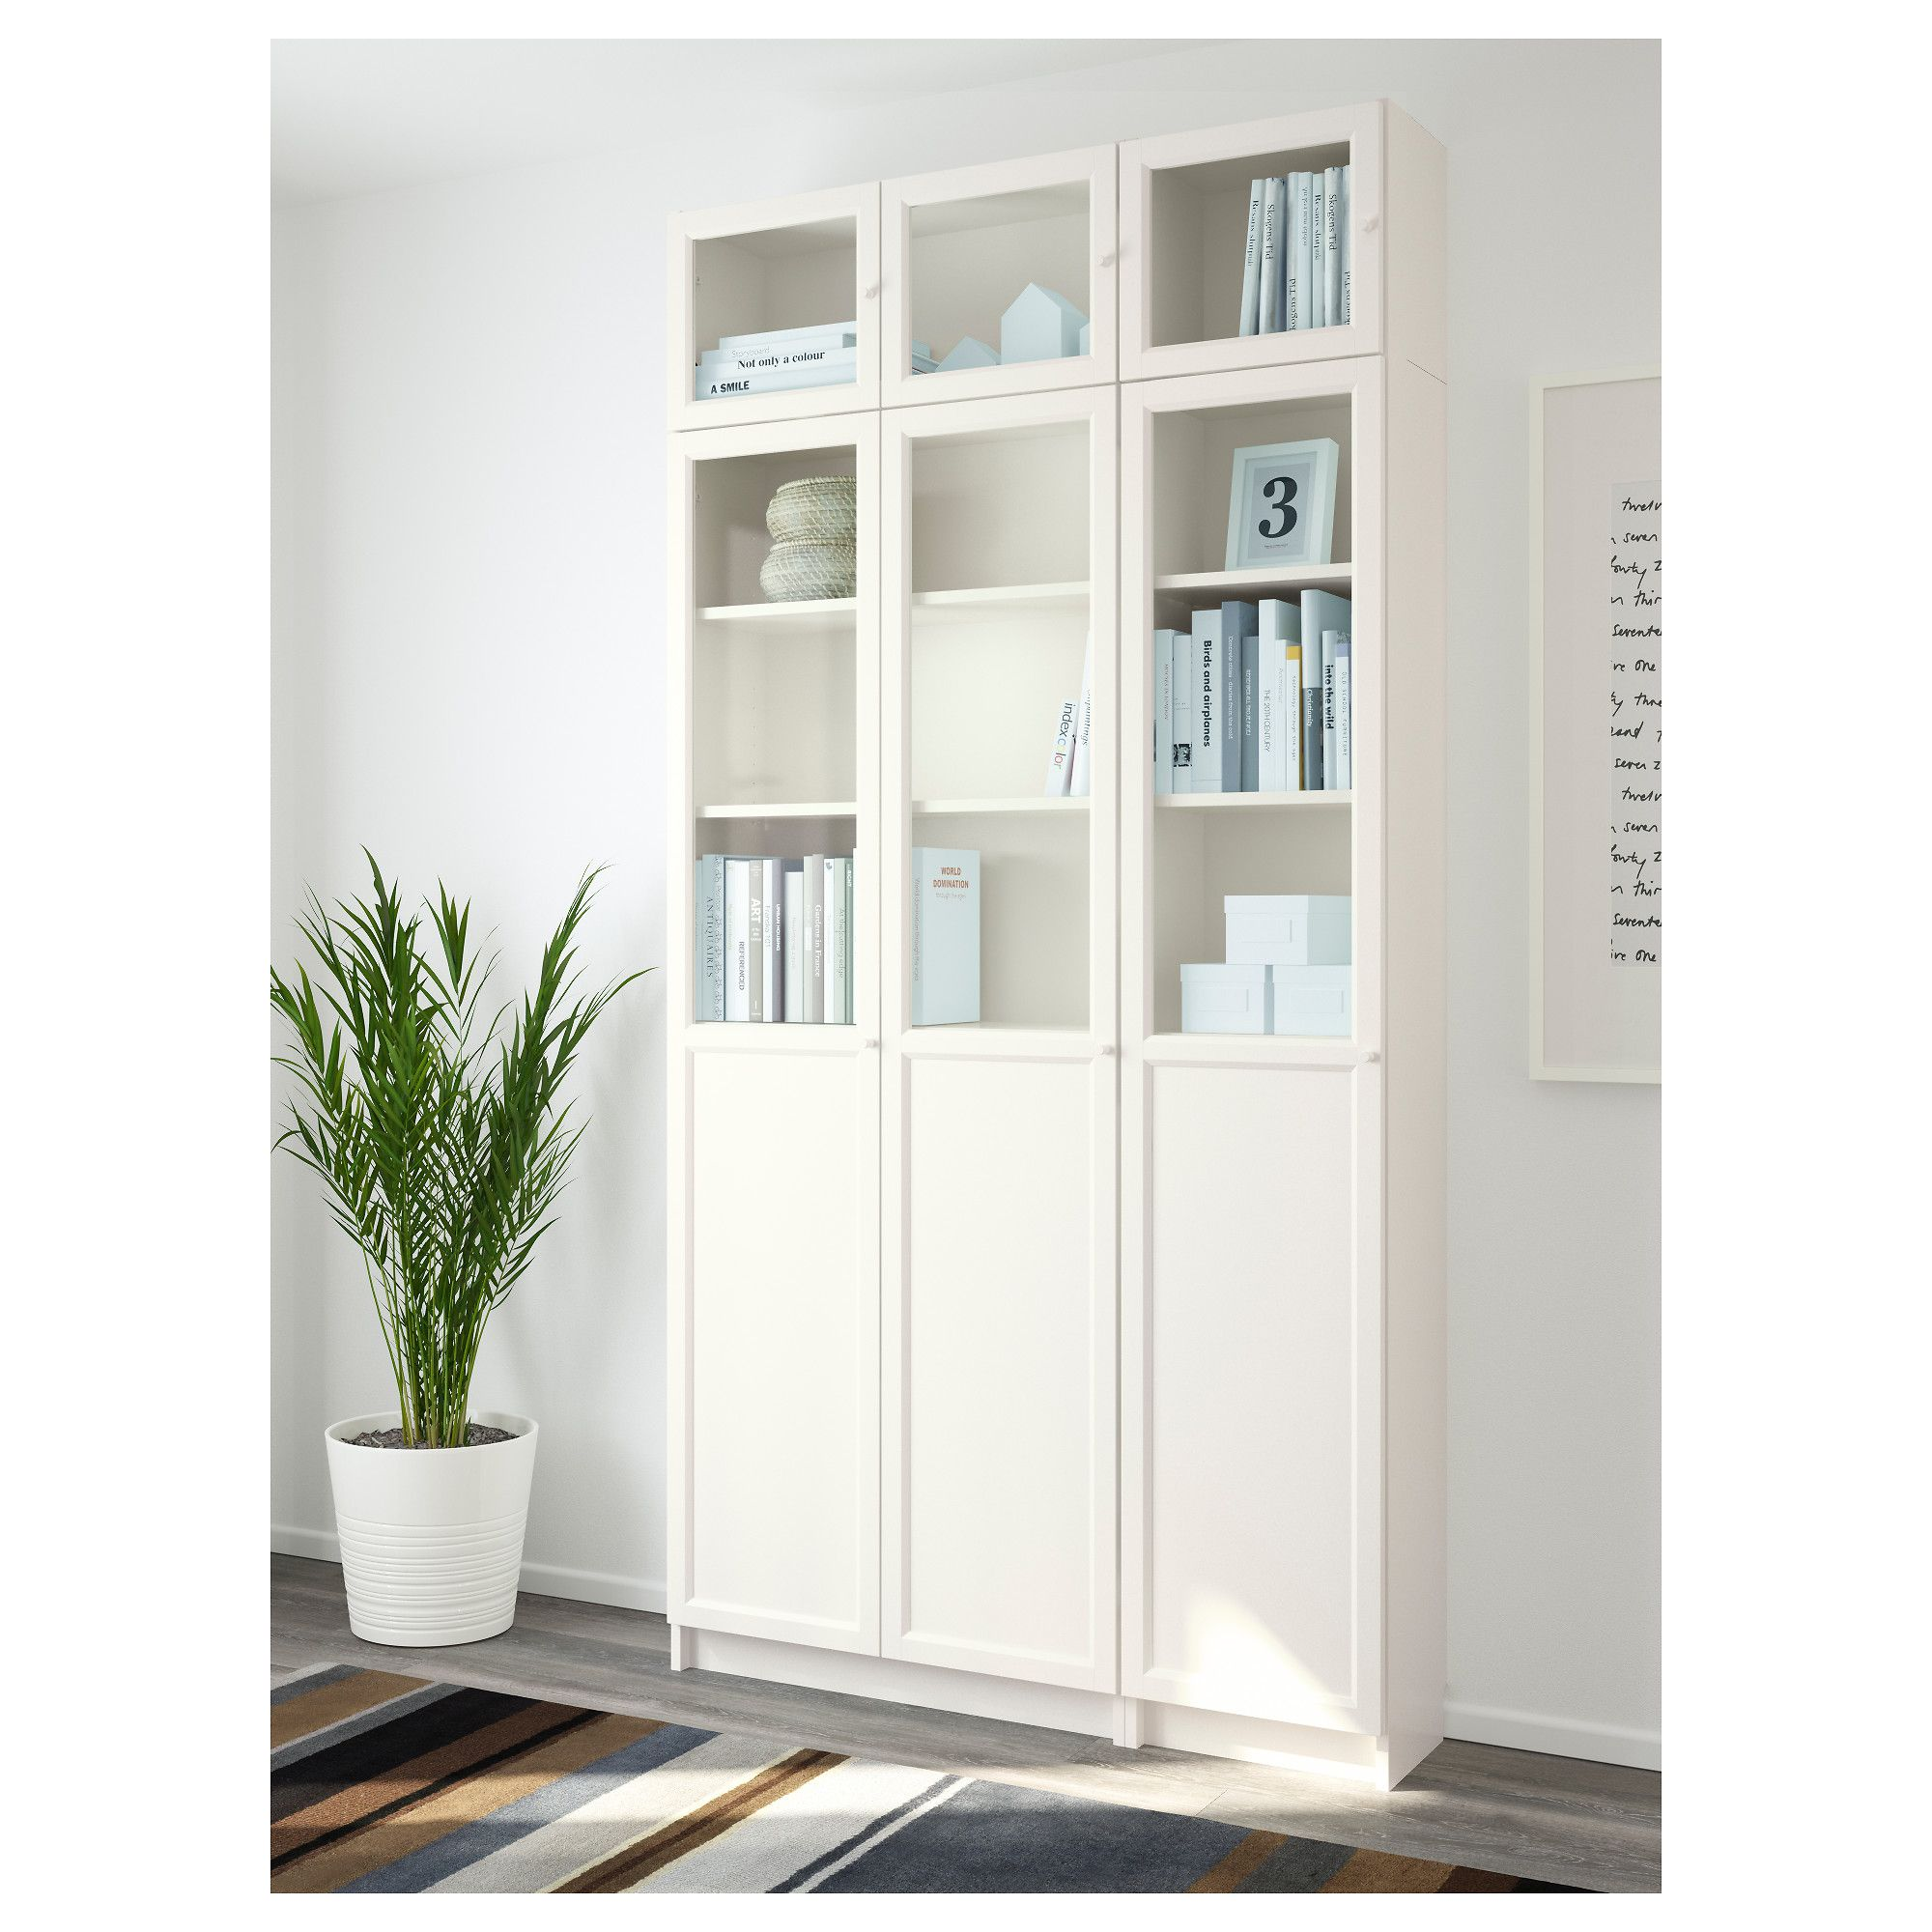 billy oxberg bookcase white glass 120x237x30 cm ikea billy shelves and bookcase white. Black Bedroom Furniture Sets. Home Design Ideas